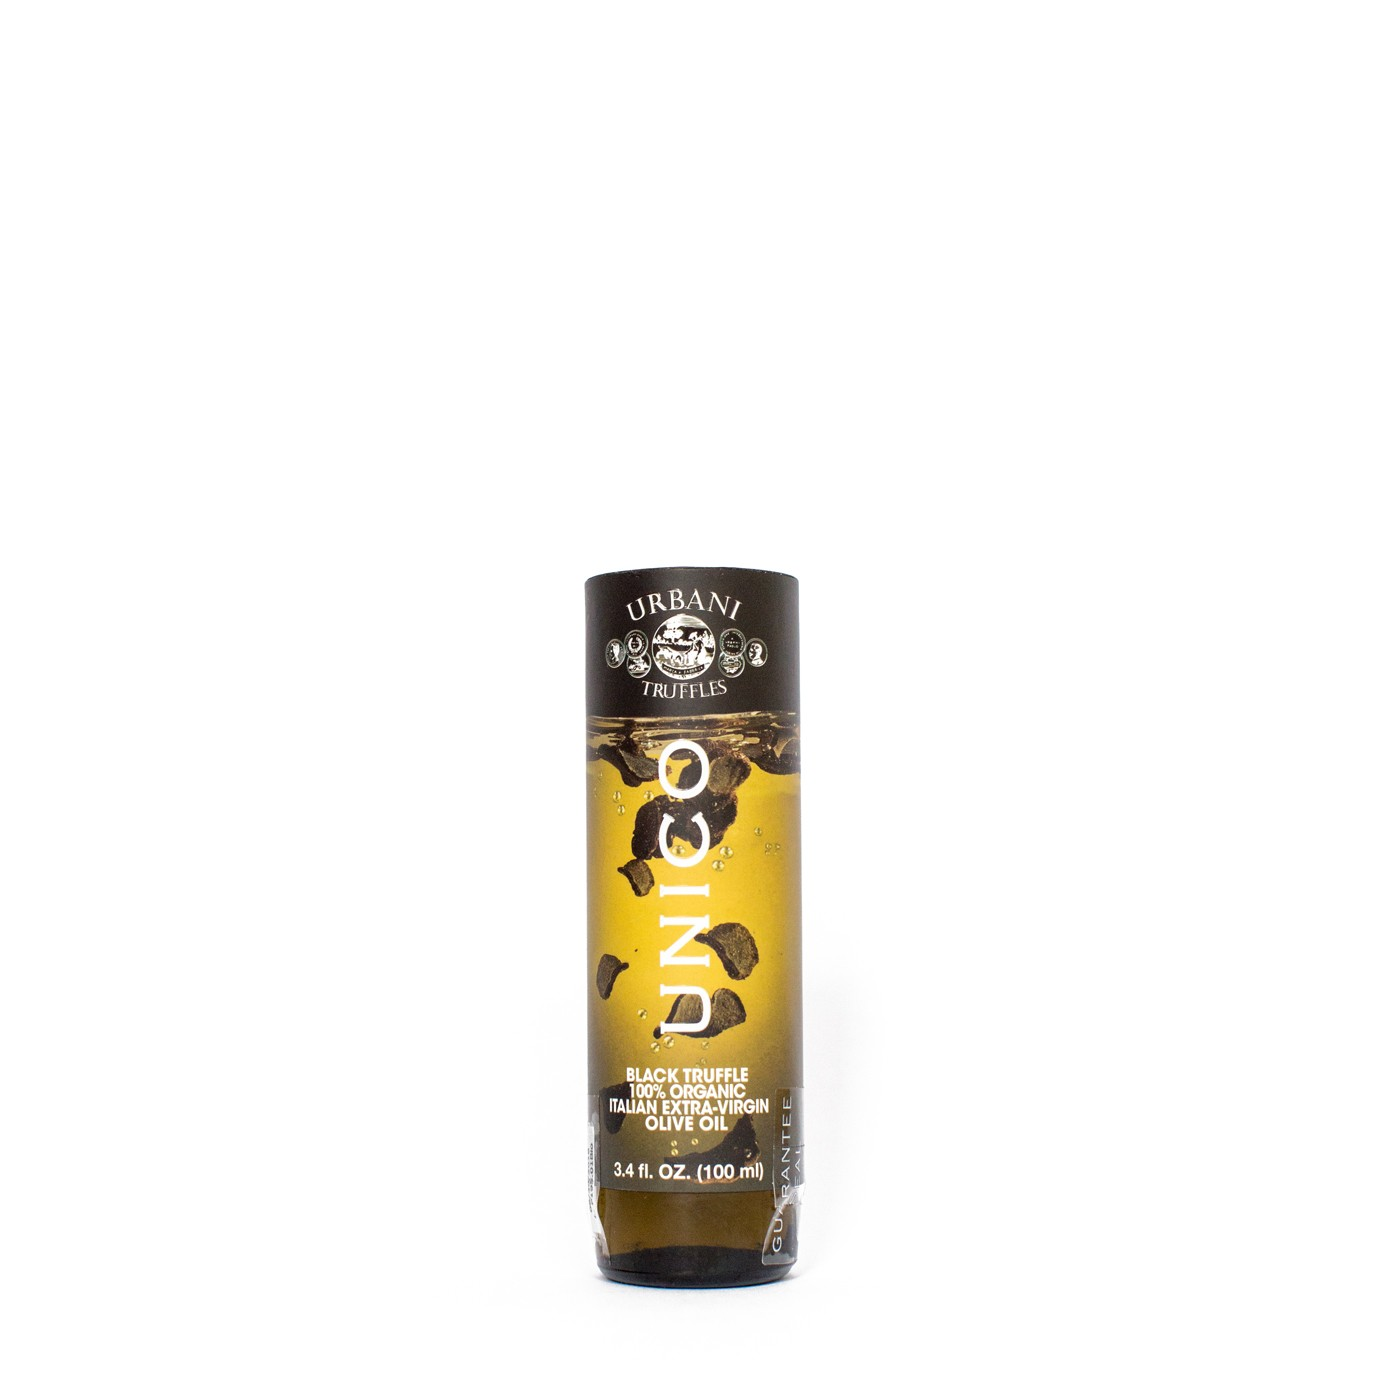 Extra Virgin Olive Oil with Black Truffle 3.4 oz